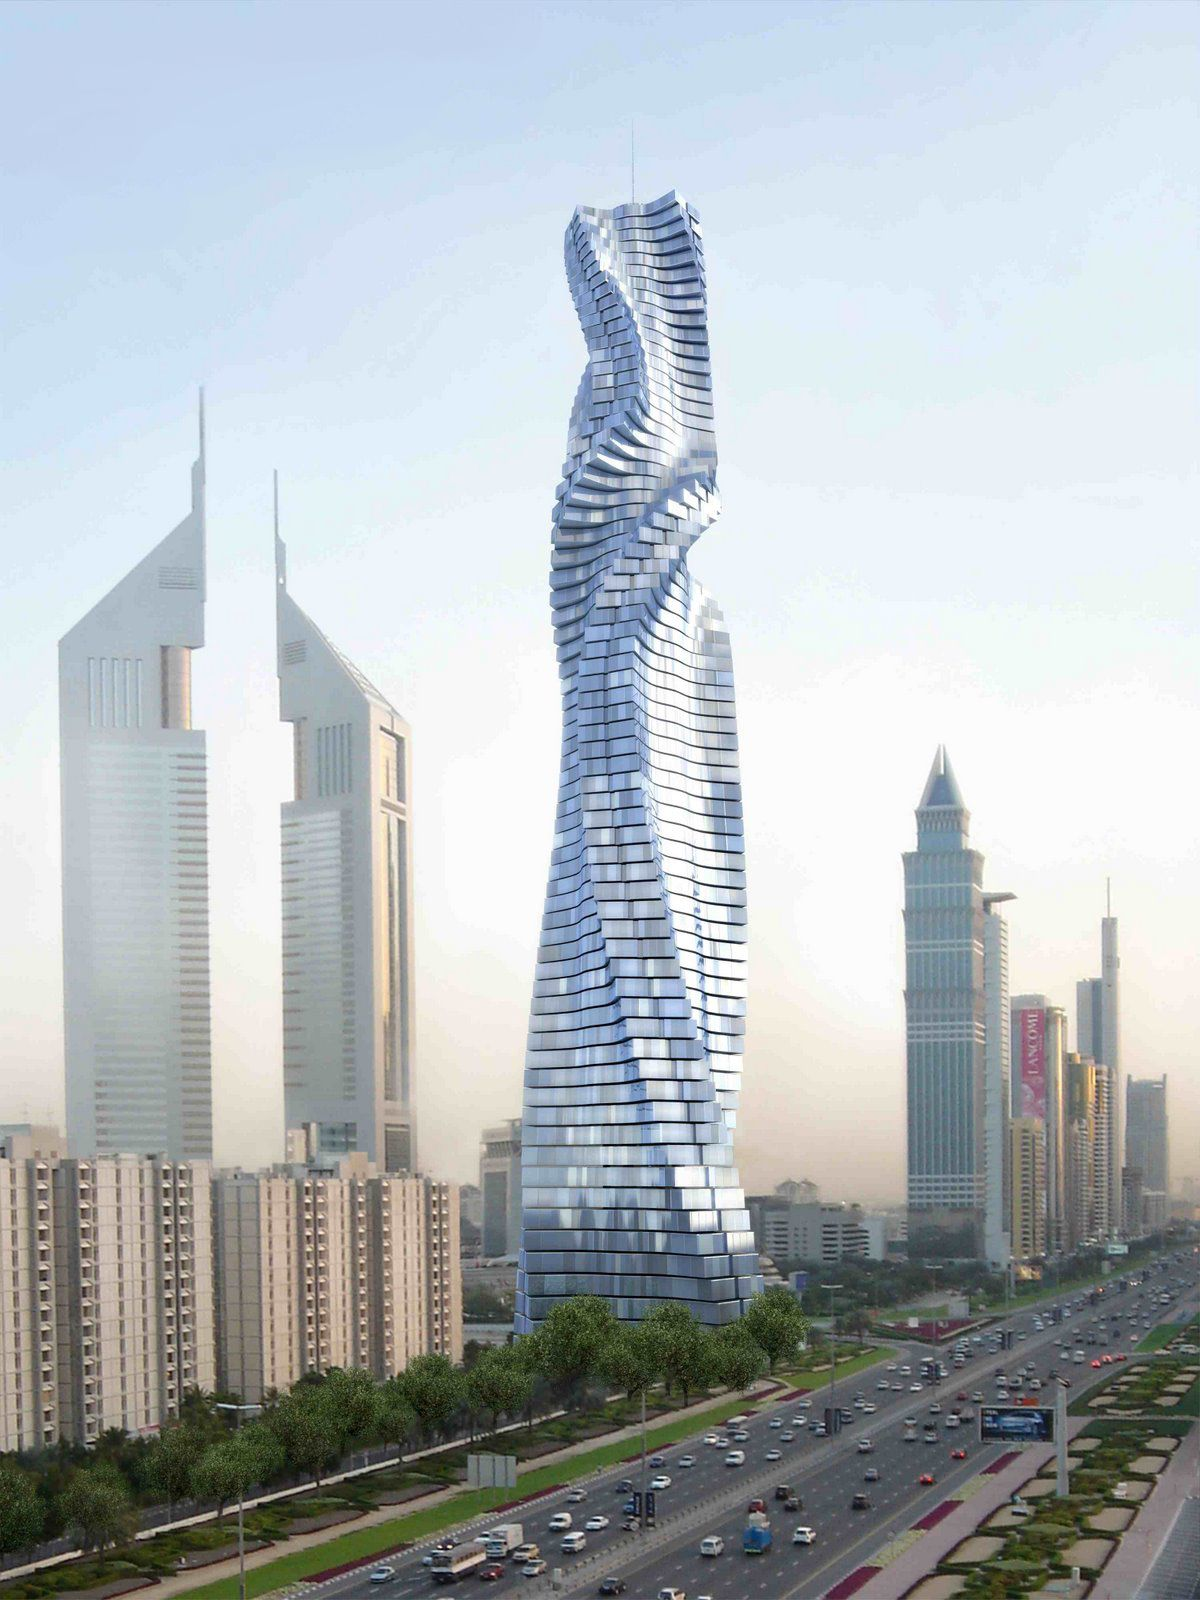 Building Design Part - 41: The Dynamic Tower Offers Infinite Design Possibilities, As Each Floor  Rotates Completely Independently To Create